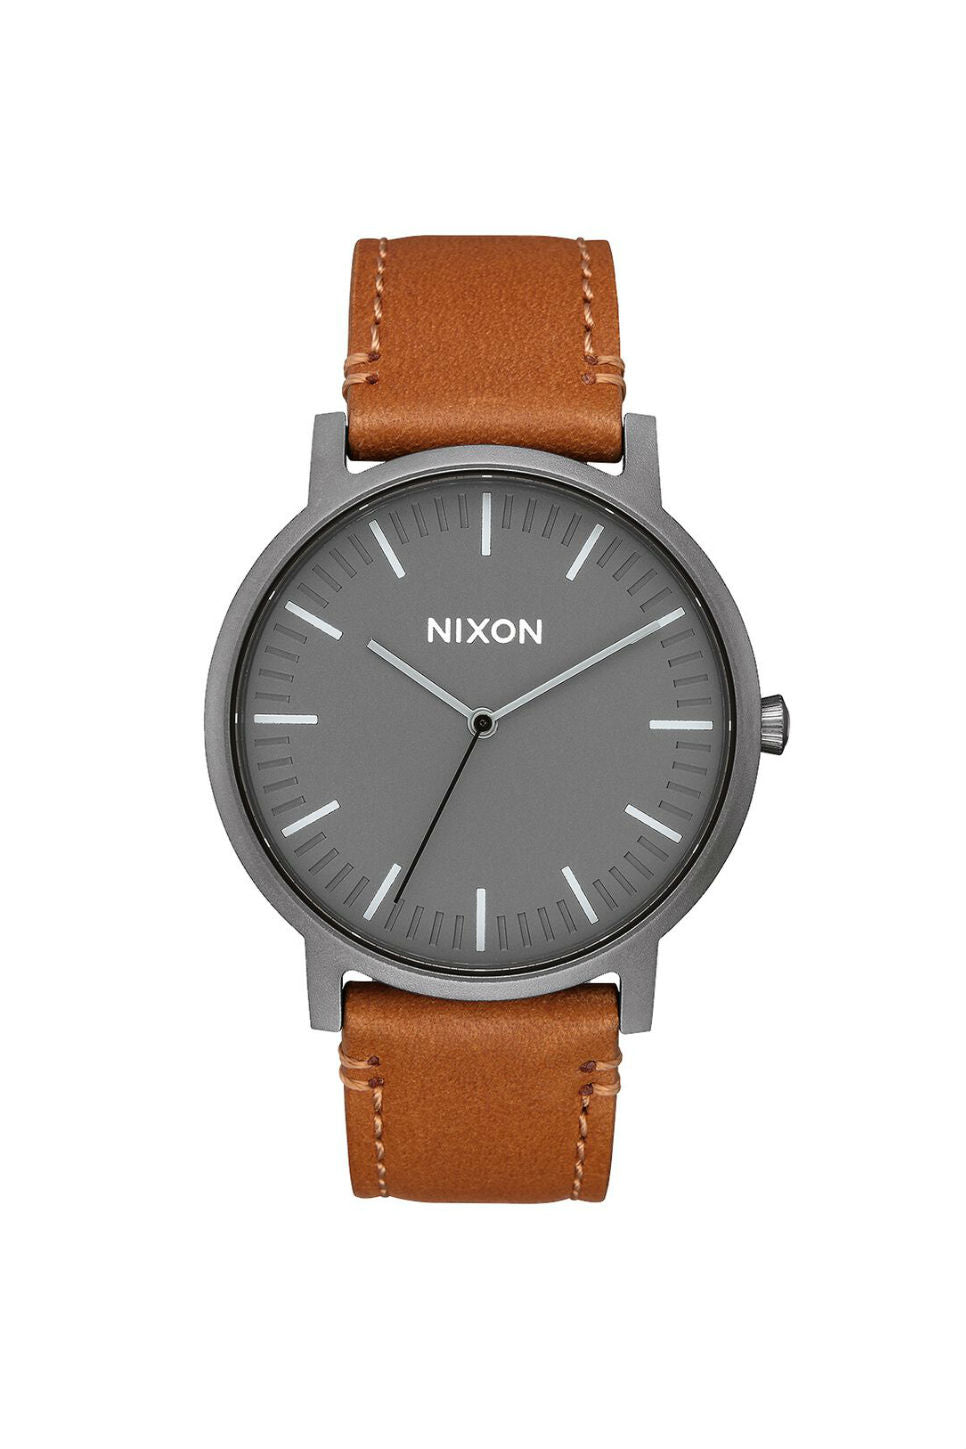 Nixon - Porter Leather Watch - Gunmetal/Charcoal/Taupe - Front